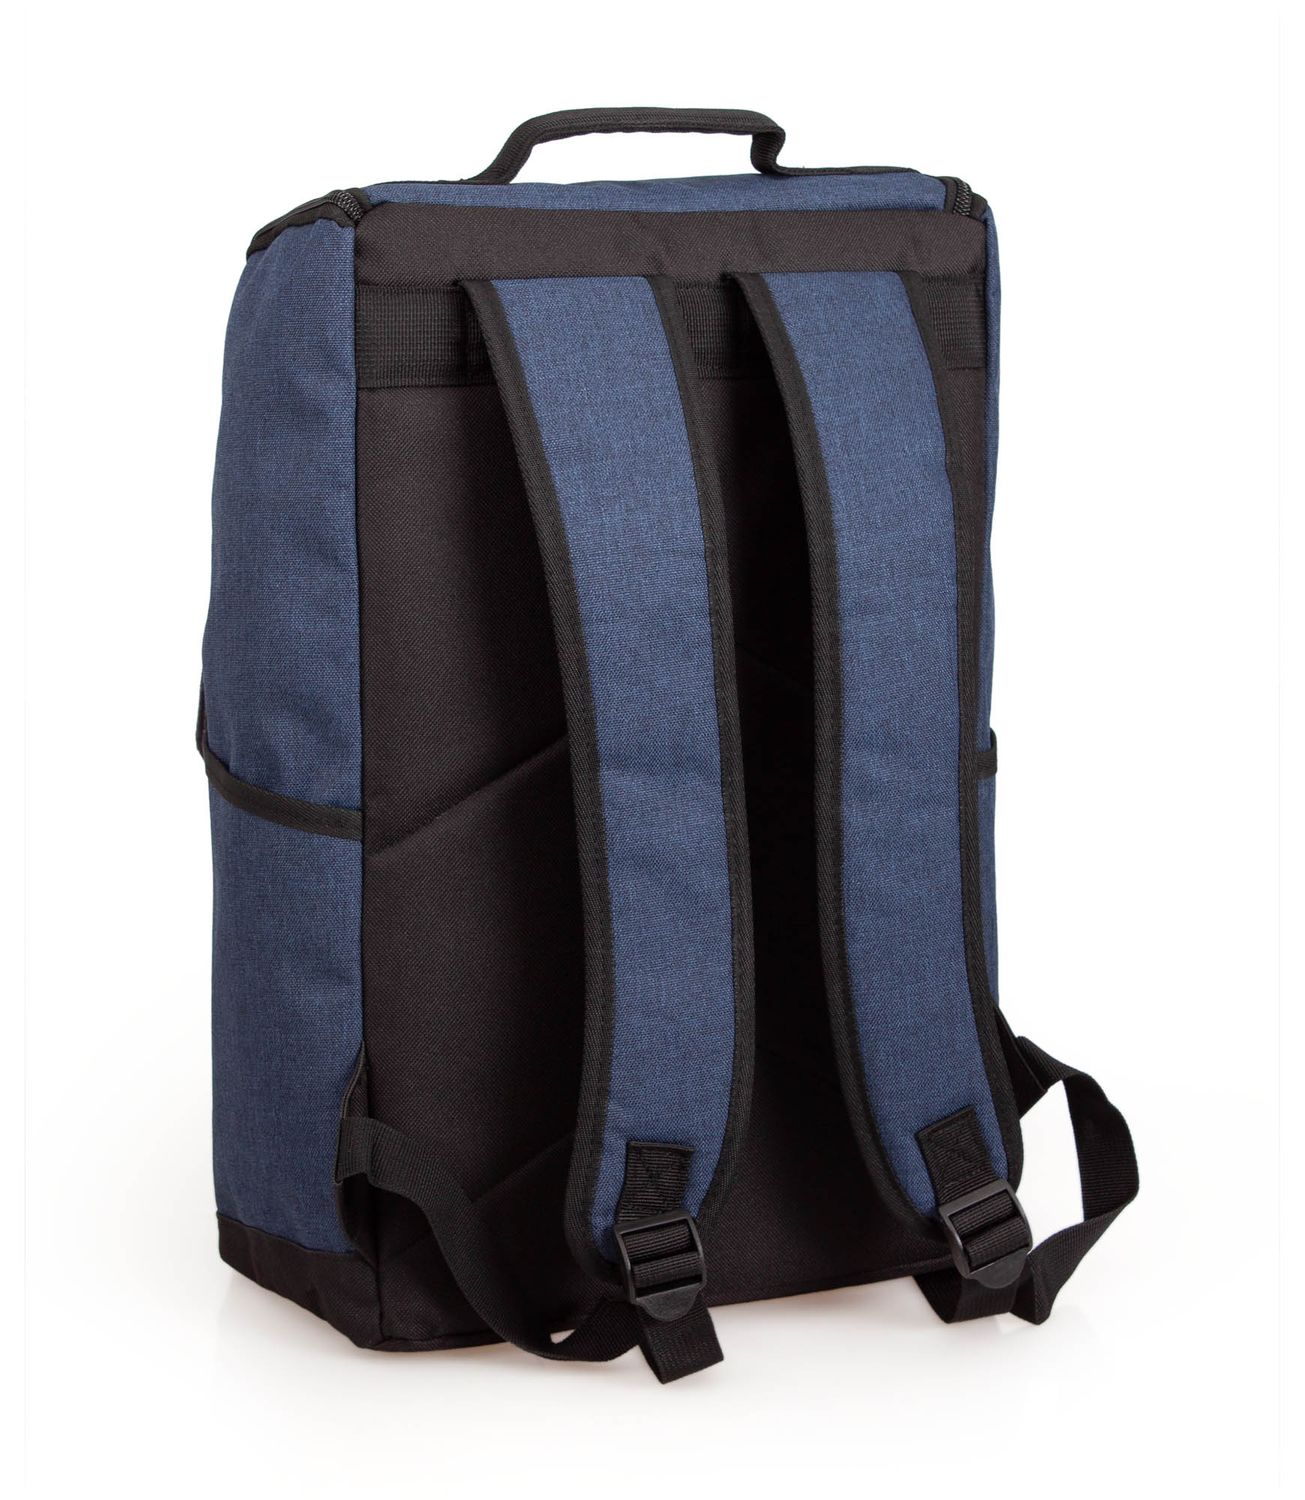 Backpack Rucksack EL CHARRO LP Blue – image 2